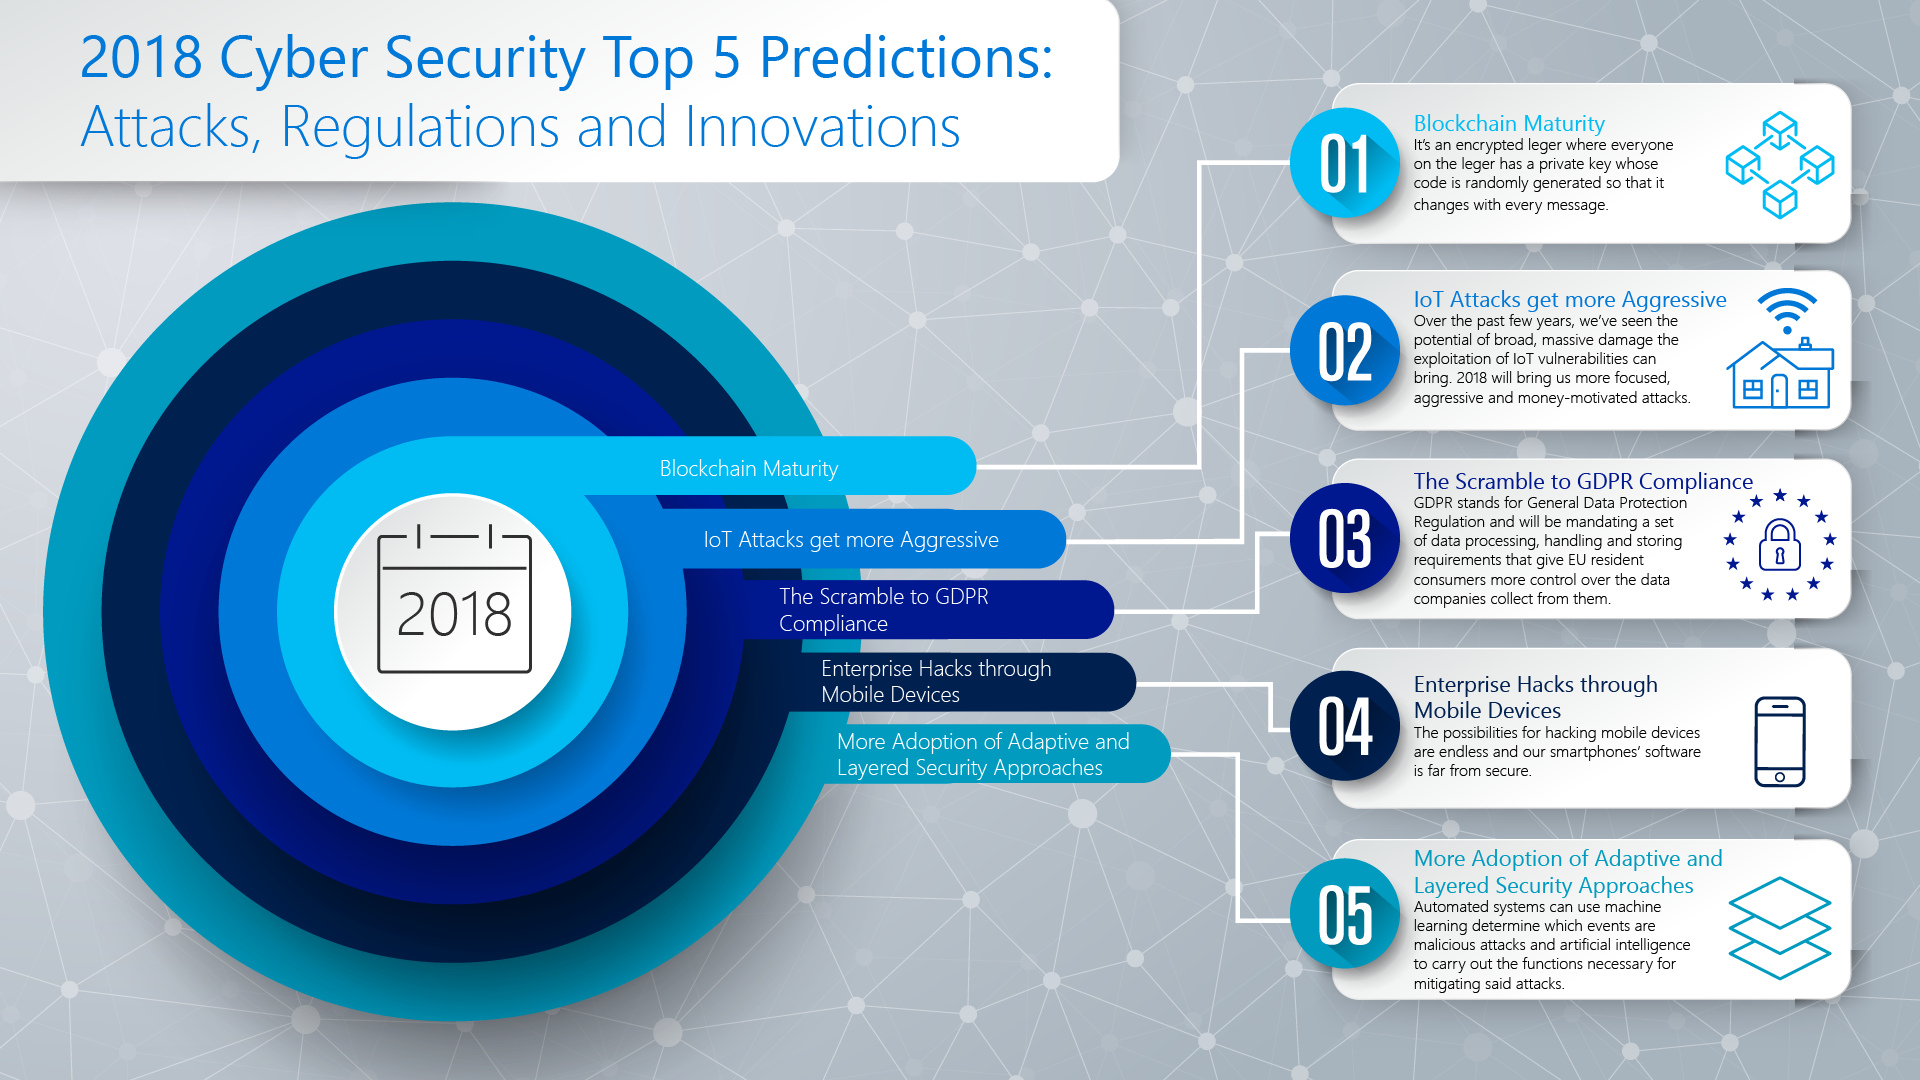 2018 Cyber Security Top 5 Predictions- Attacks, Regulations and Innovations